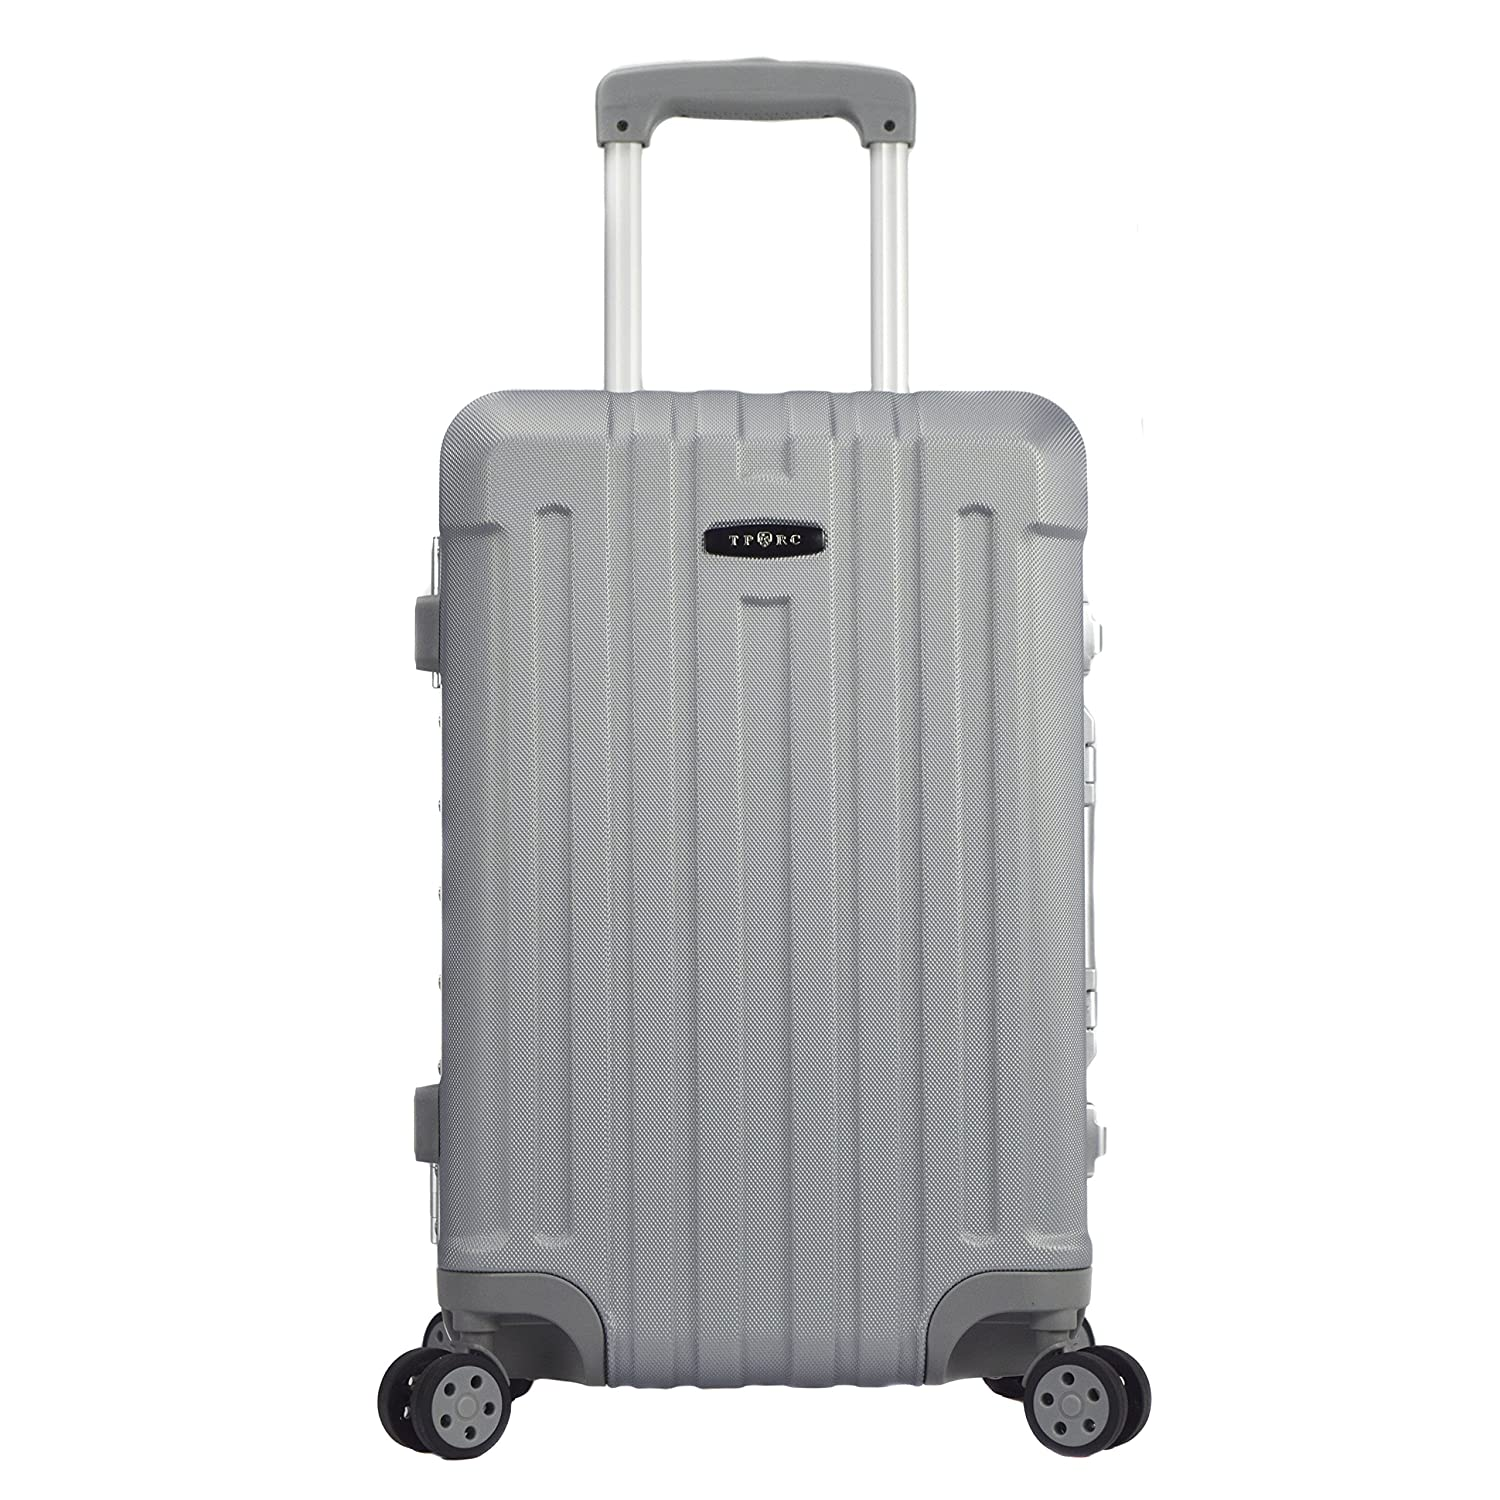 TPRC 20 Seattle Collection Hardside Carry-On Luggage Travelers Club Luggage PR-33620-010